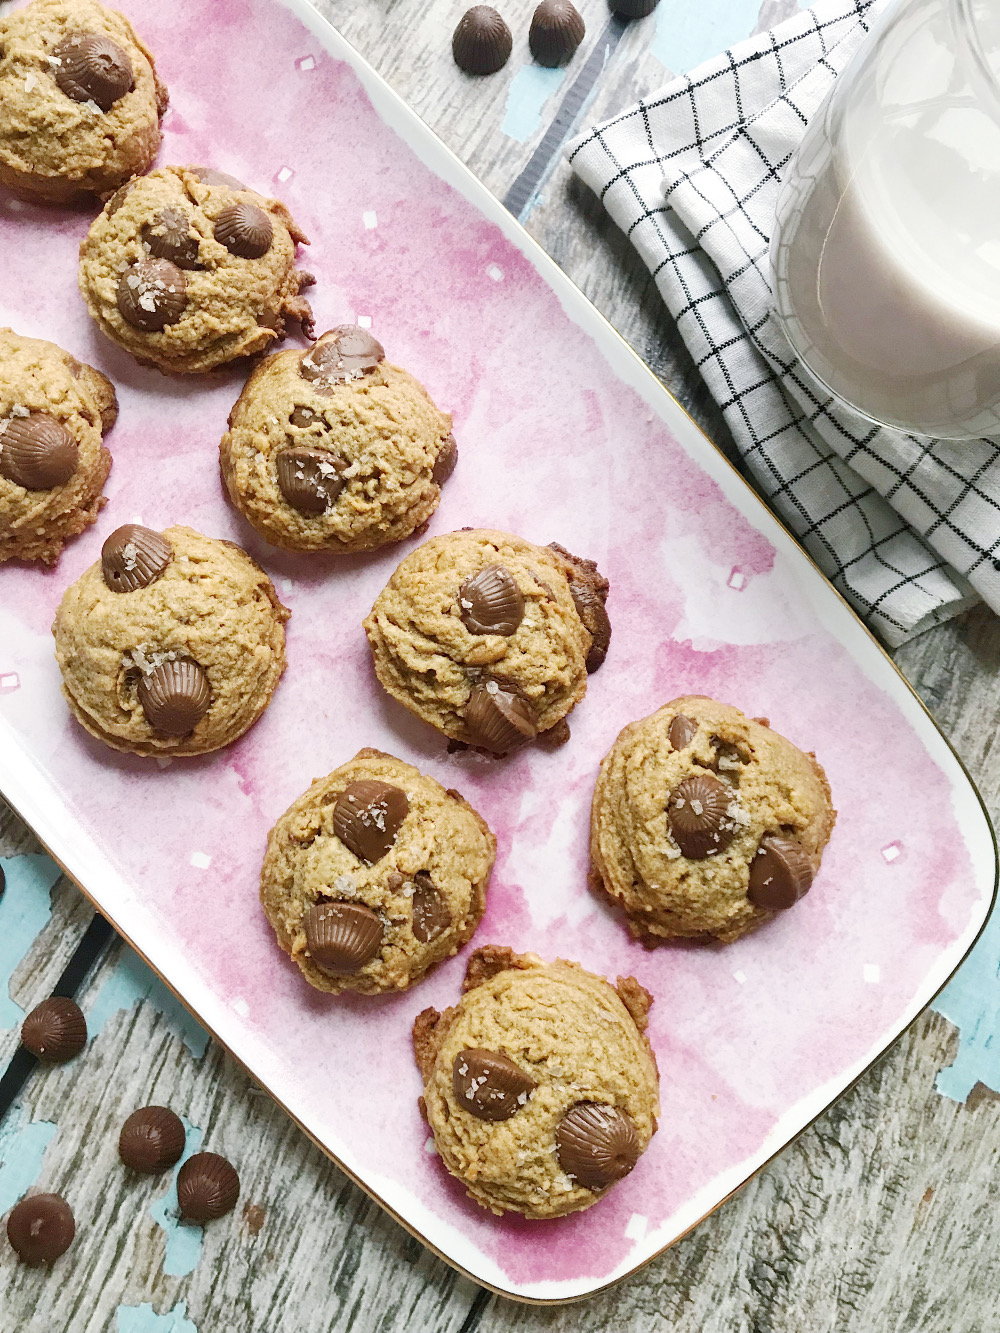 Mini Peanut Butter Cup Cookies - Confessions of a Chocoholic